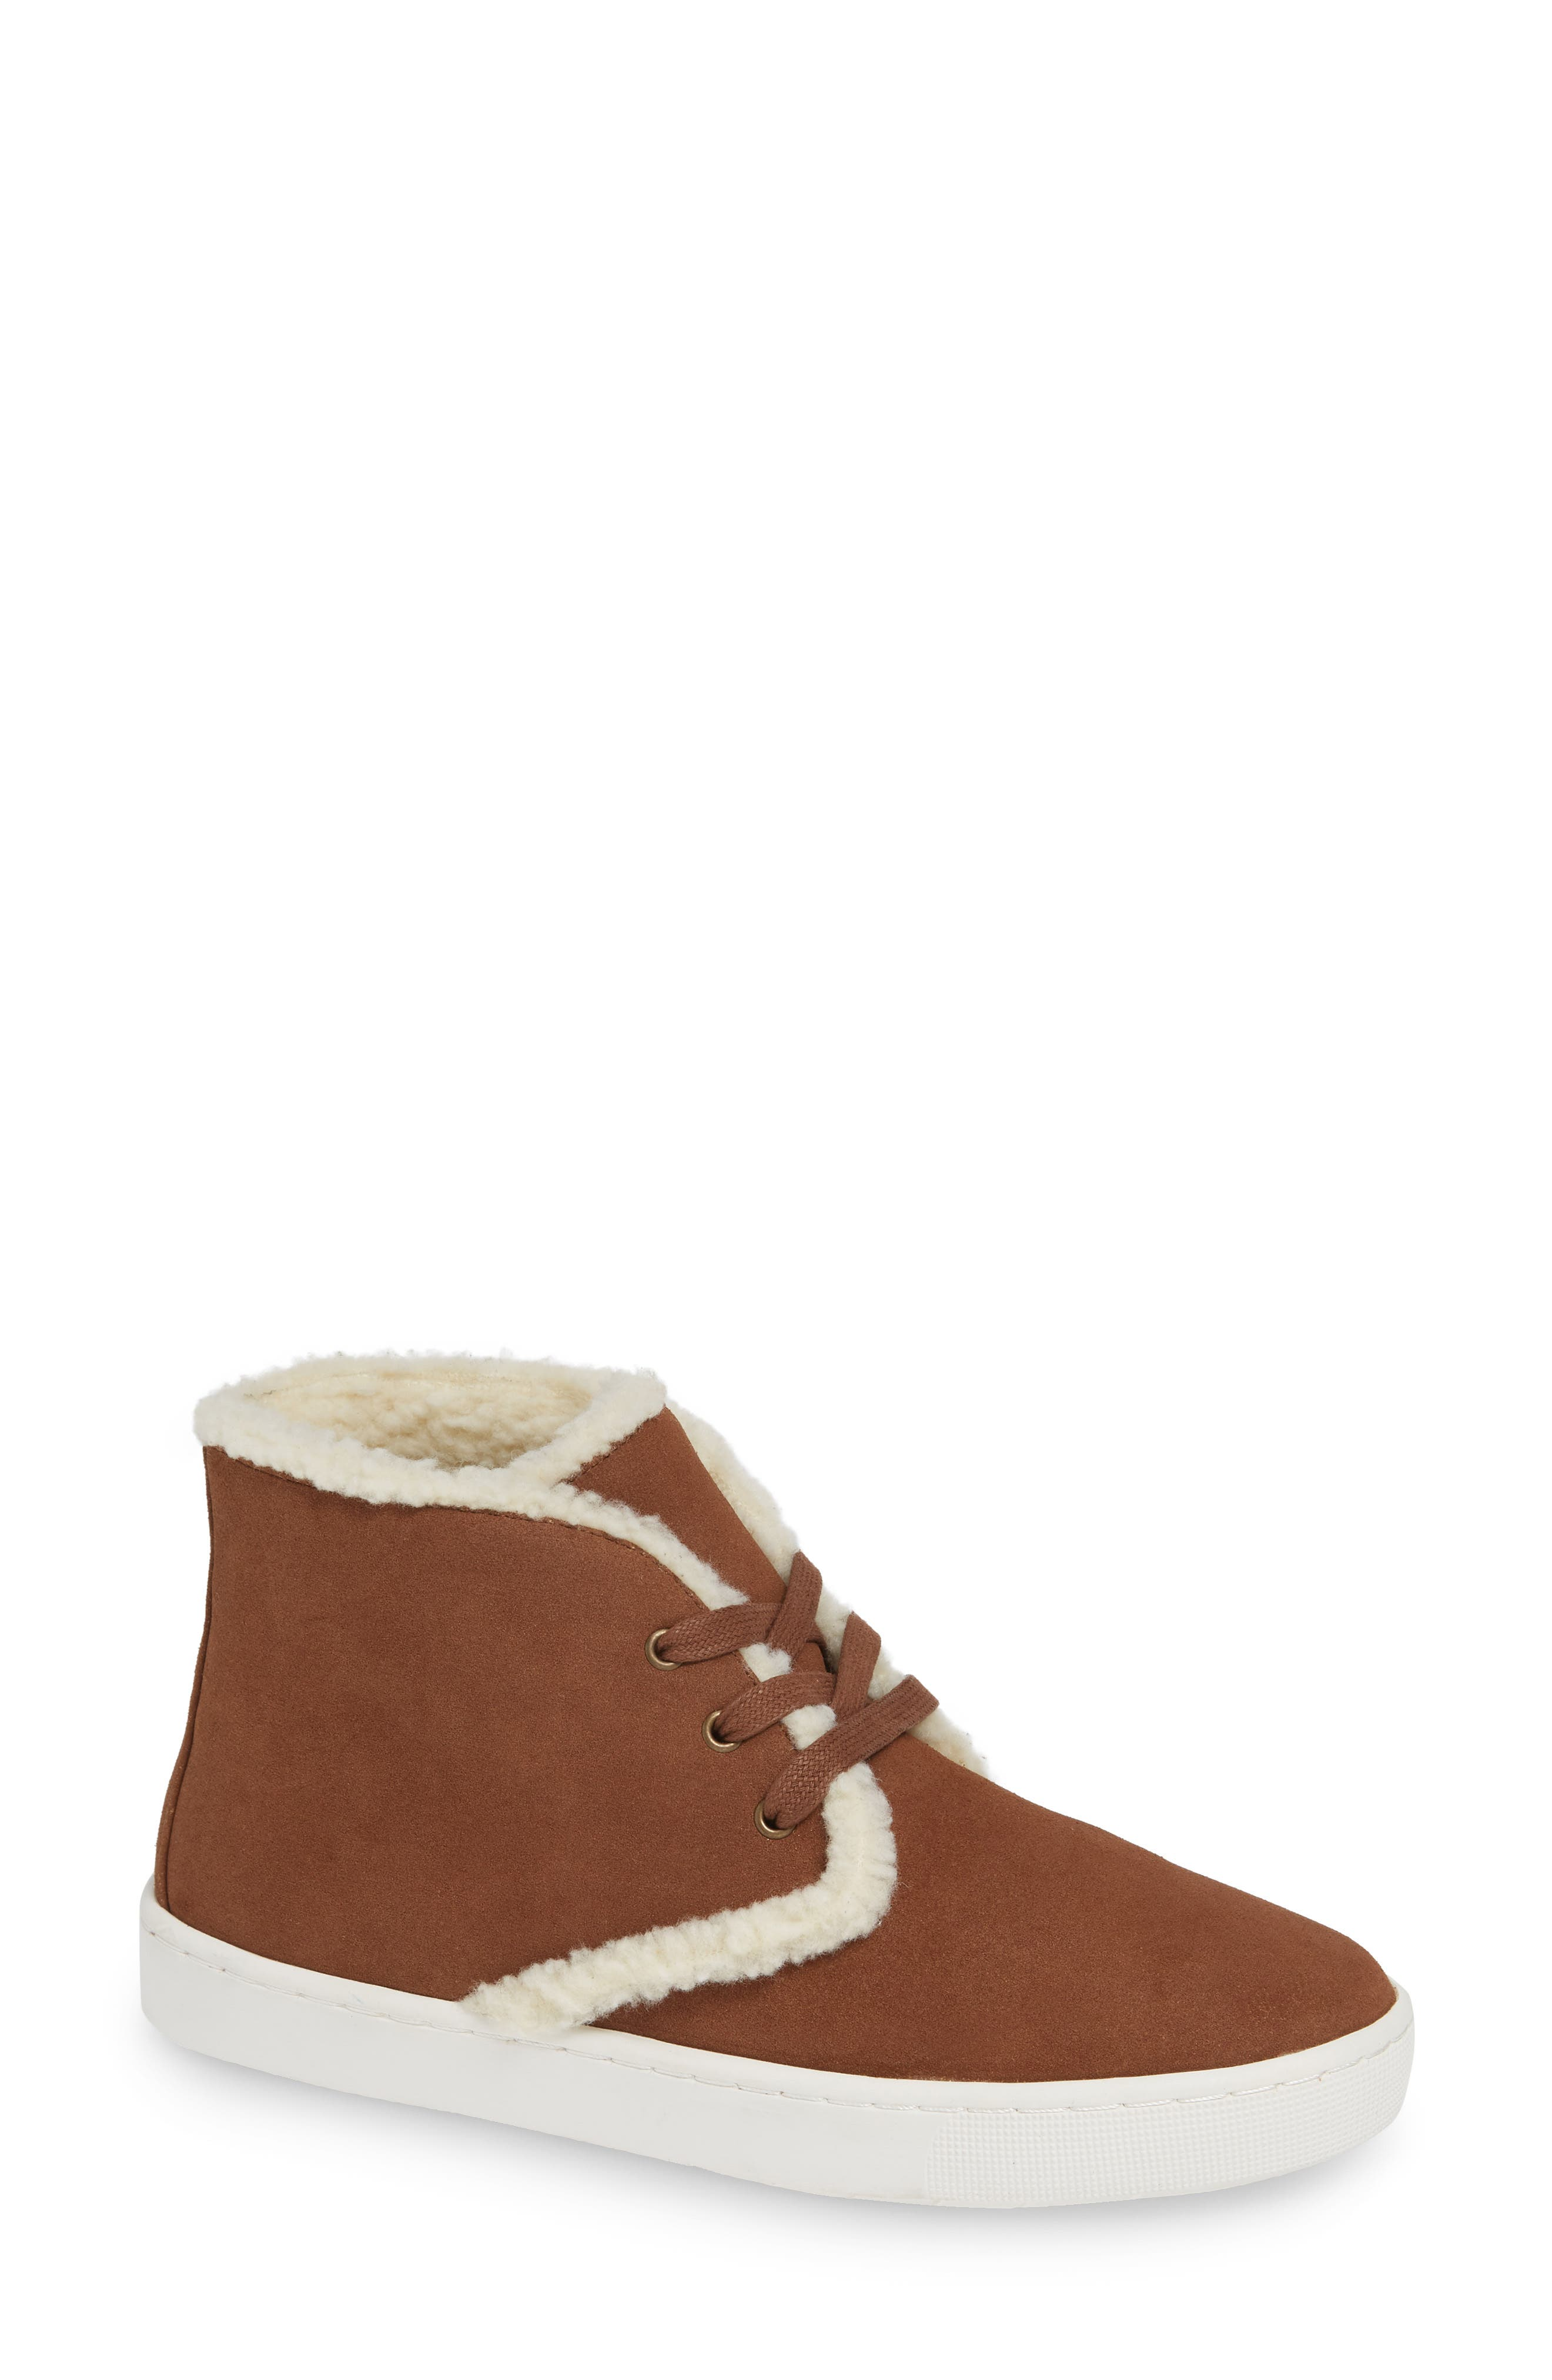 Bella Vita Gazelle Ii Bootie, Brown